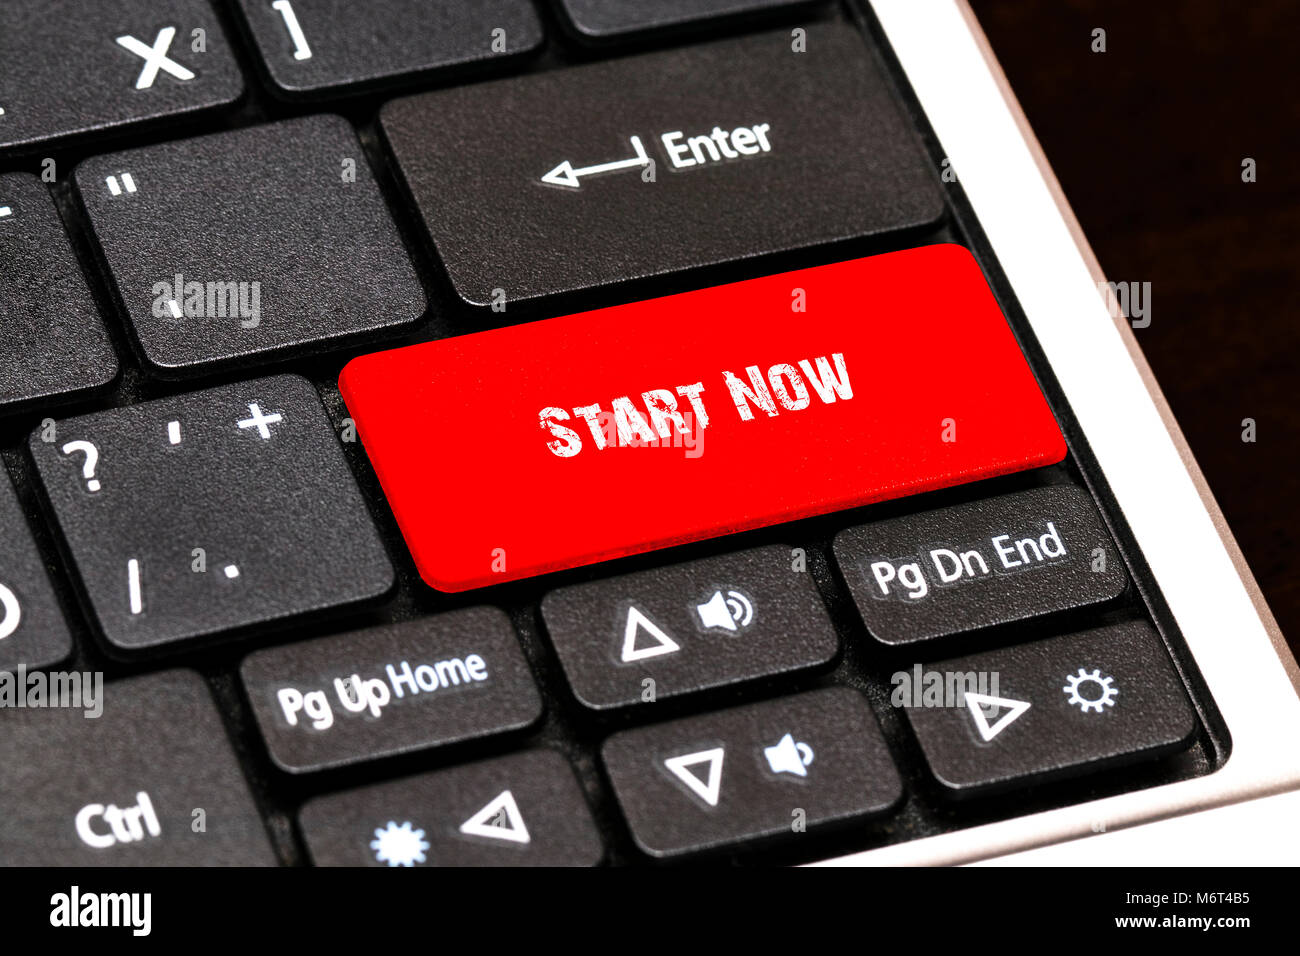 On the laptop keyboard the red button written Start Now. - Stock Image